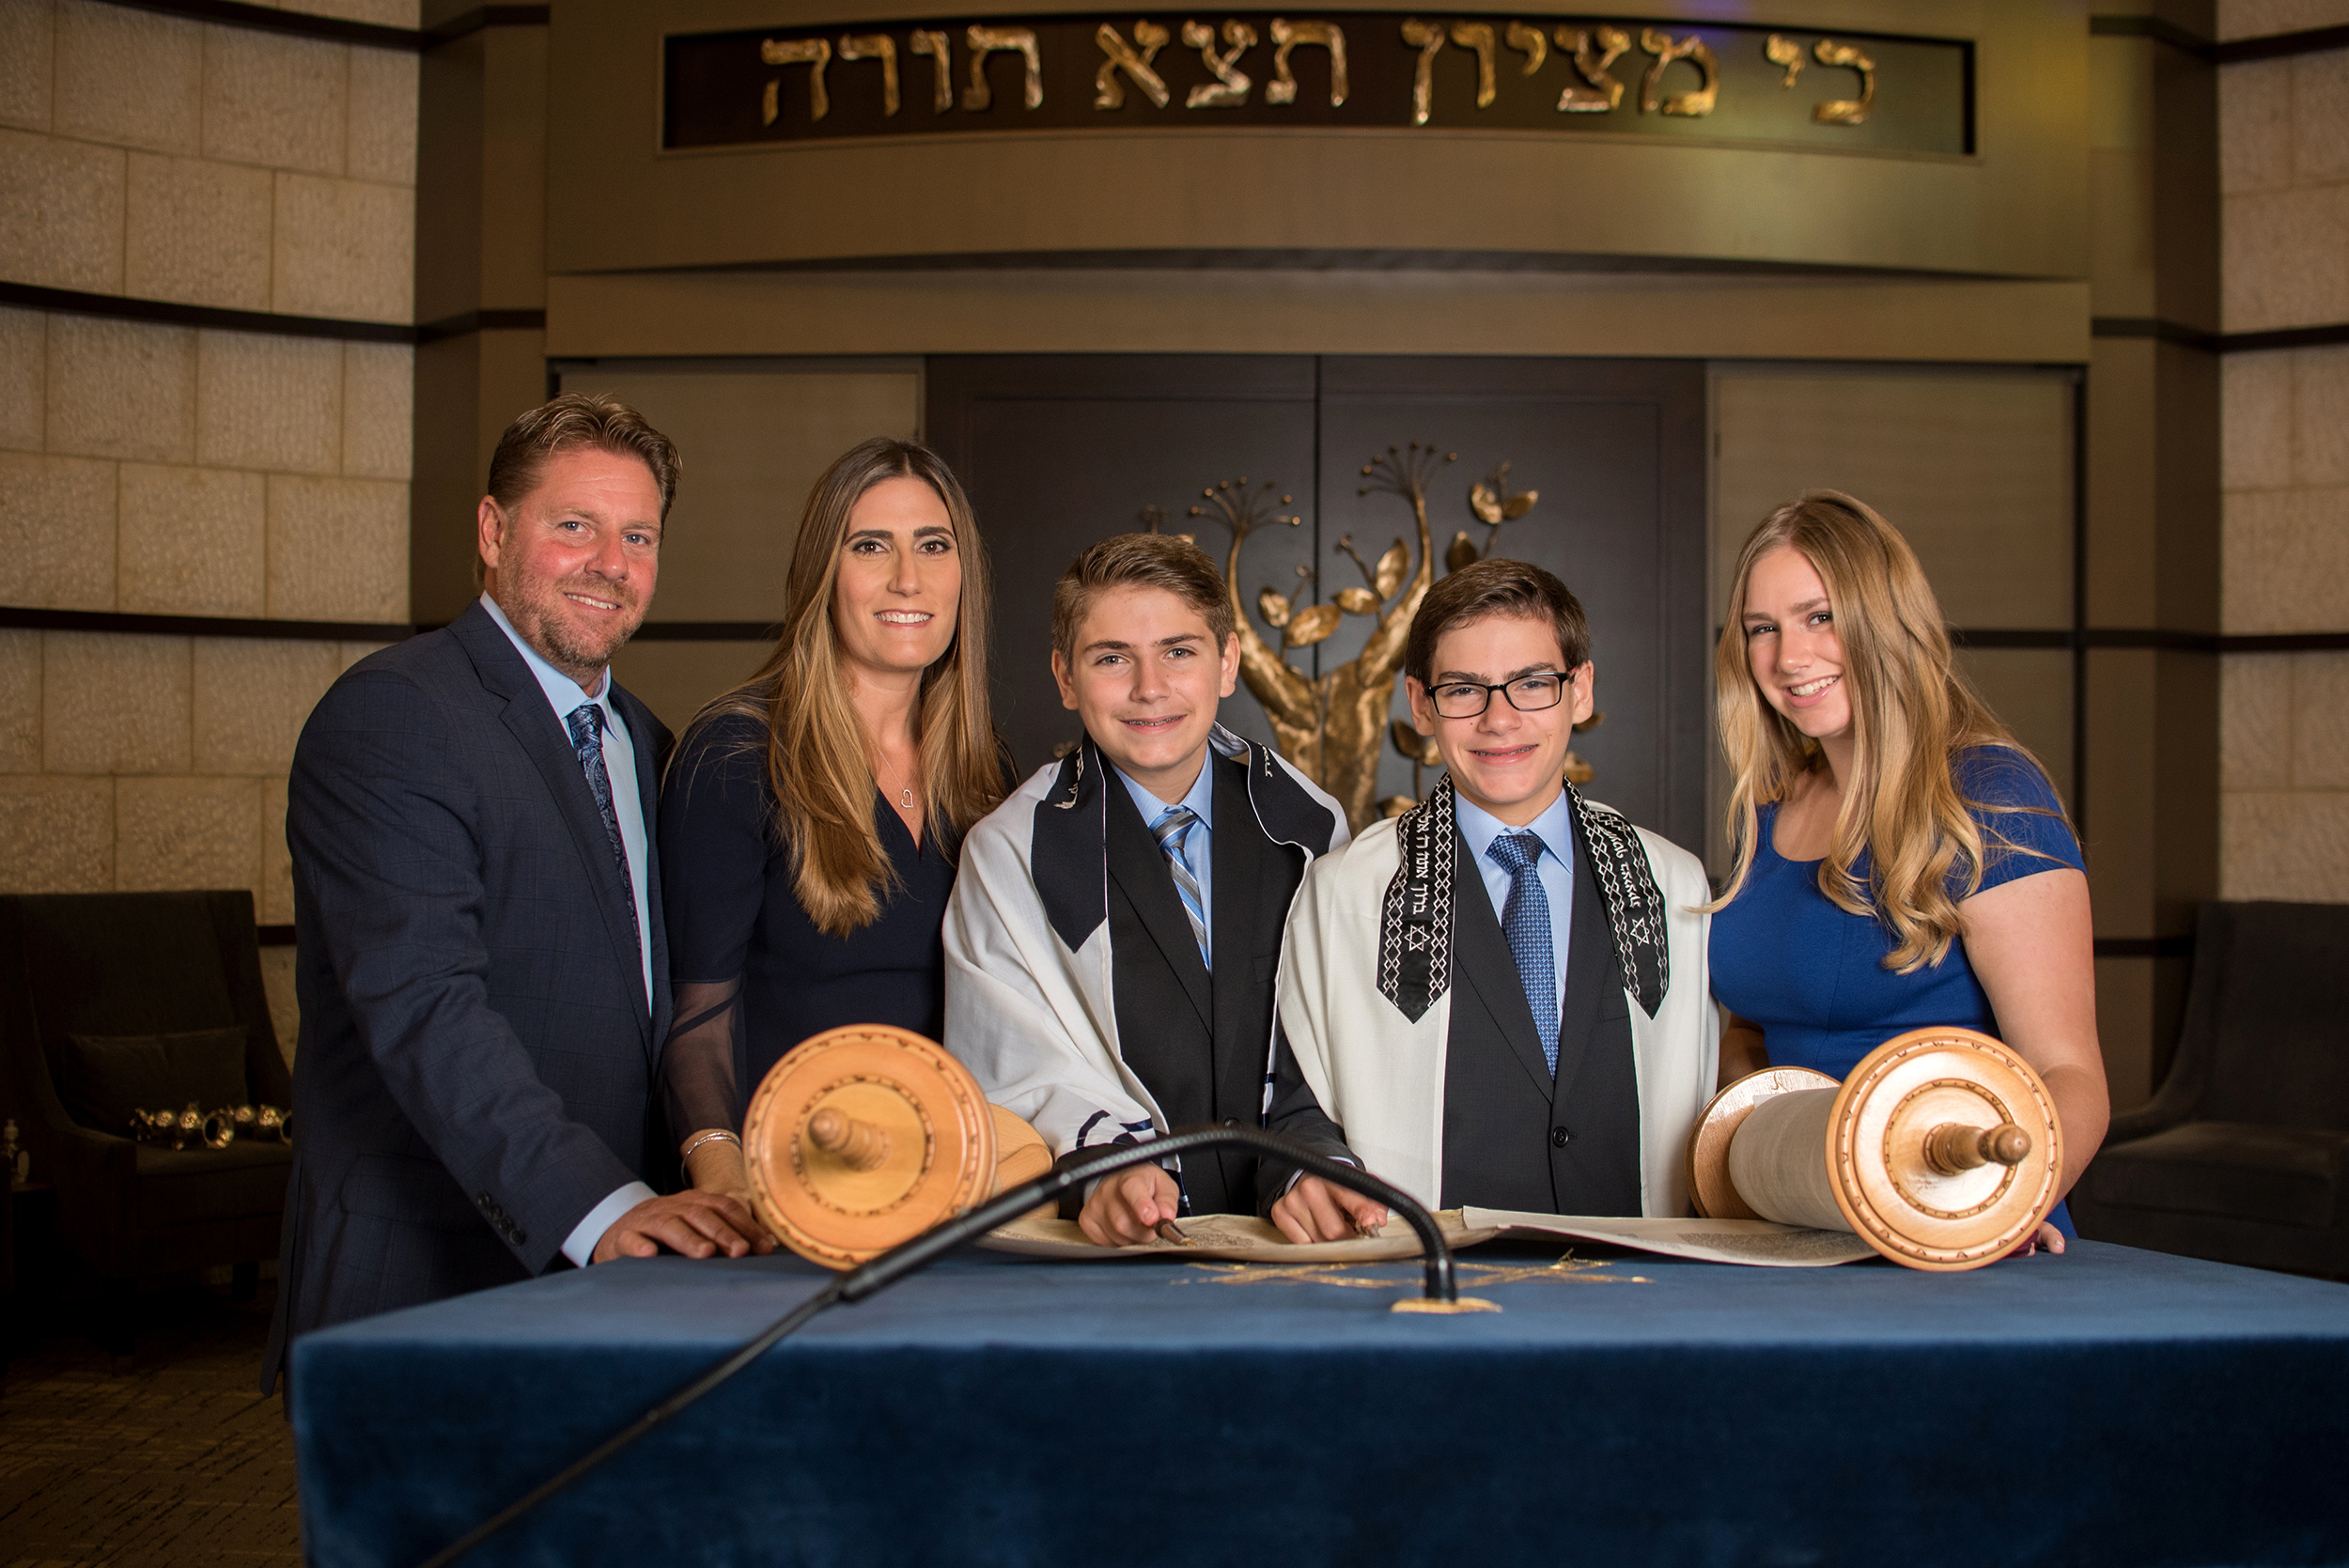 mitzvah-event-photography-south-florida-alison-frank-photography_13.jpg